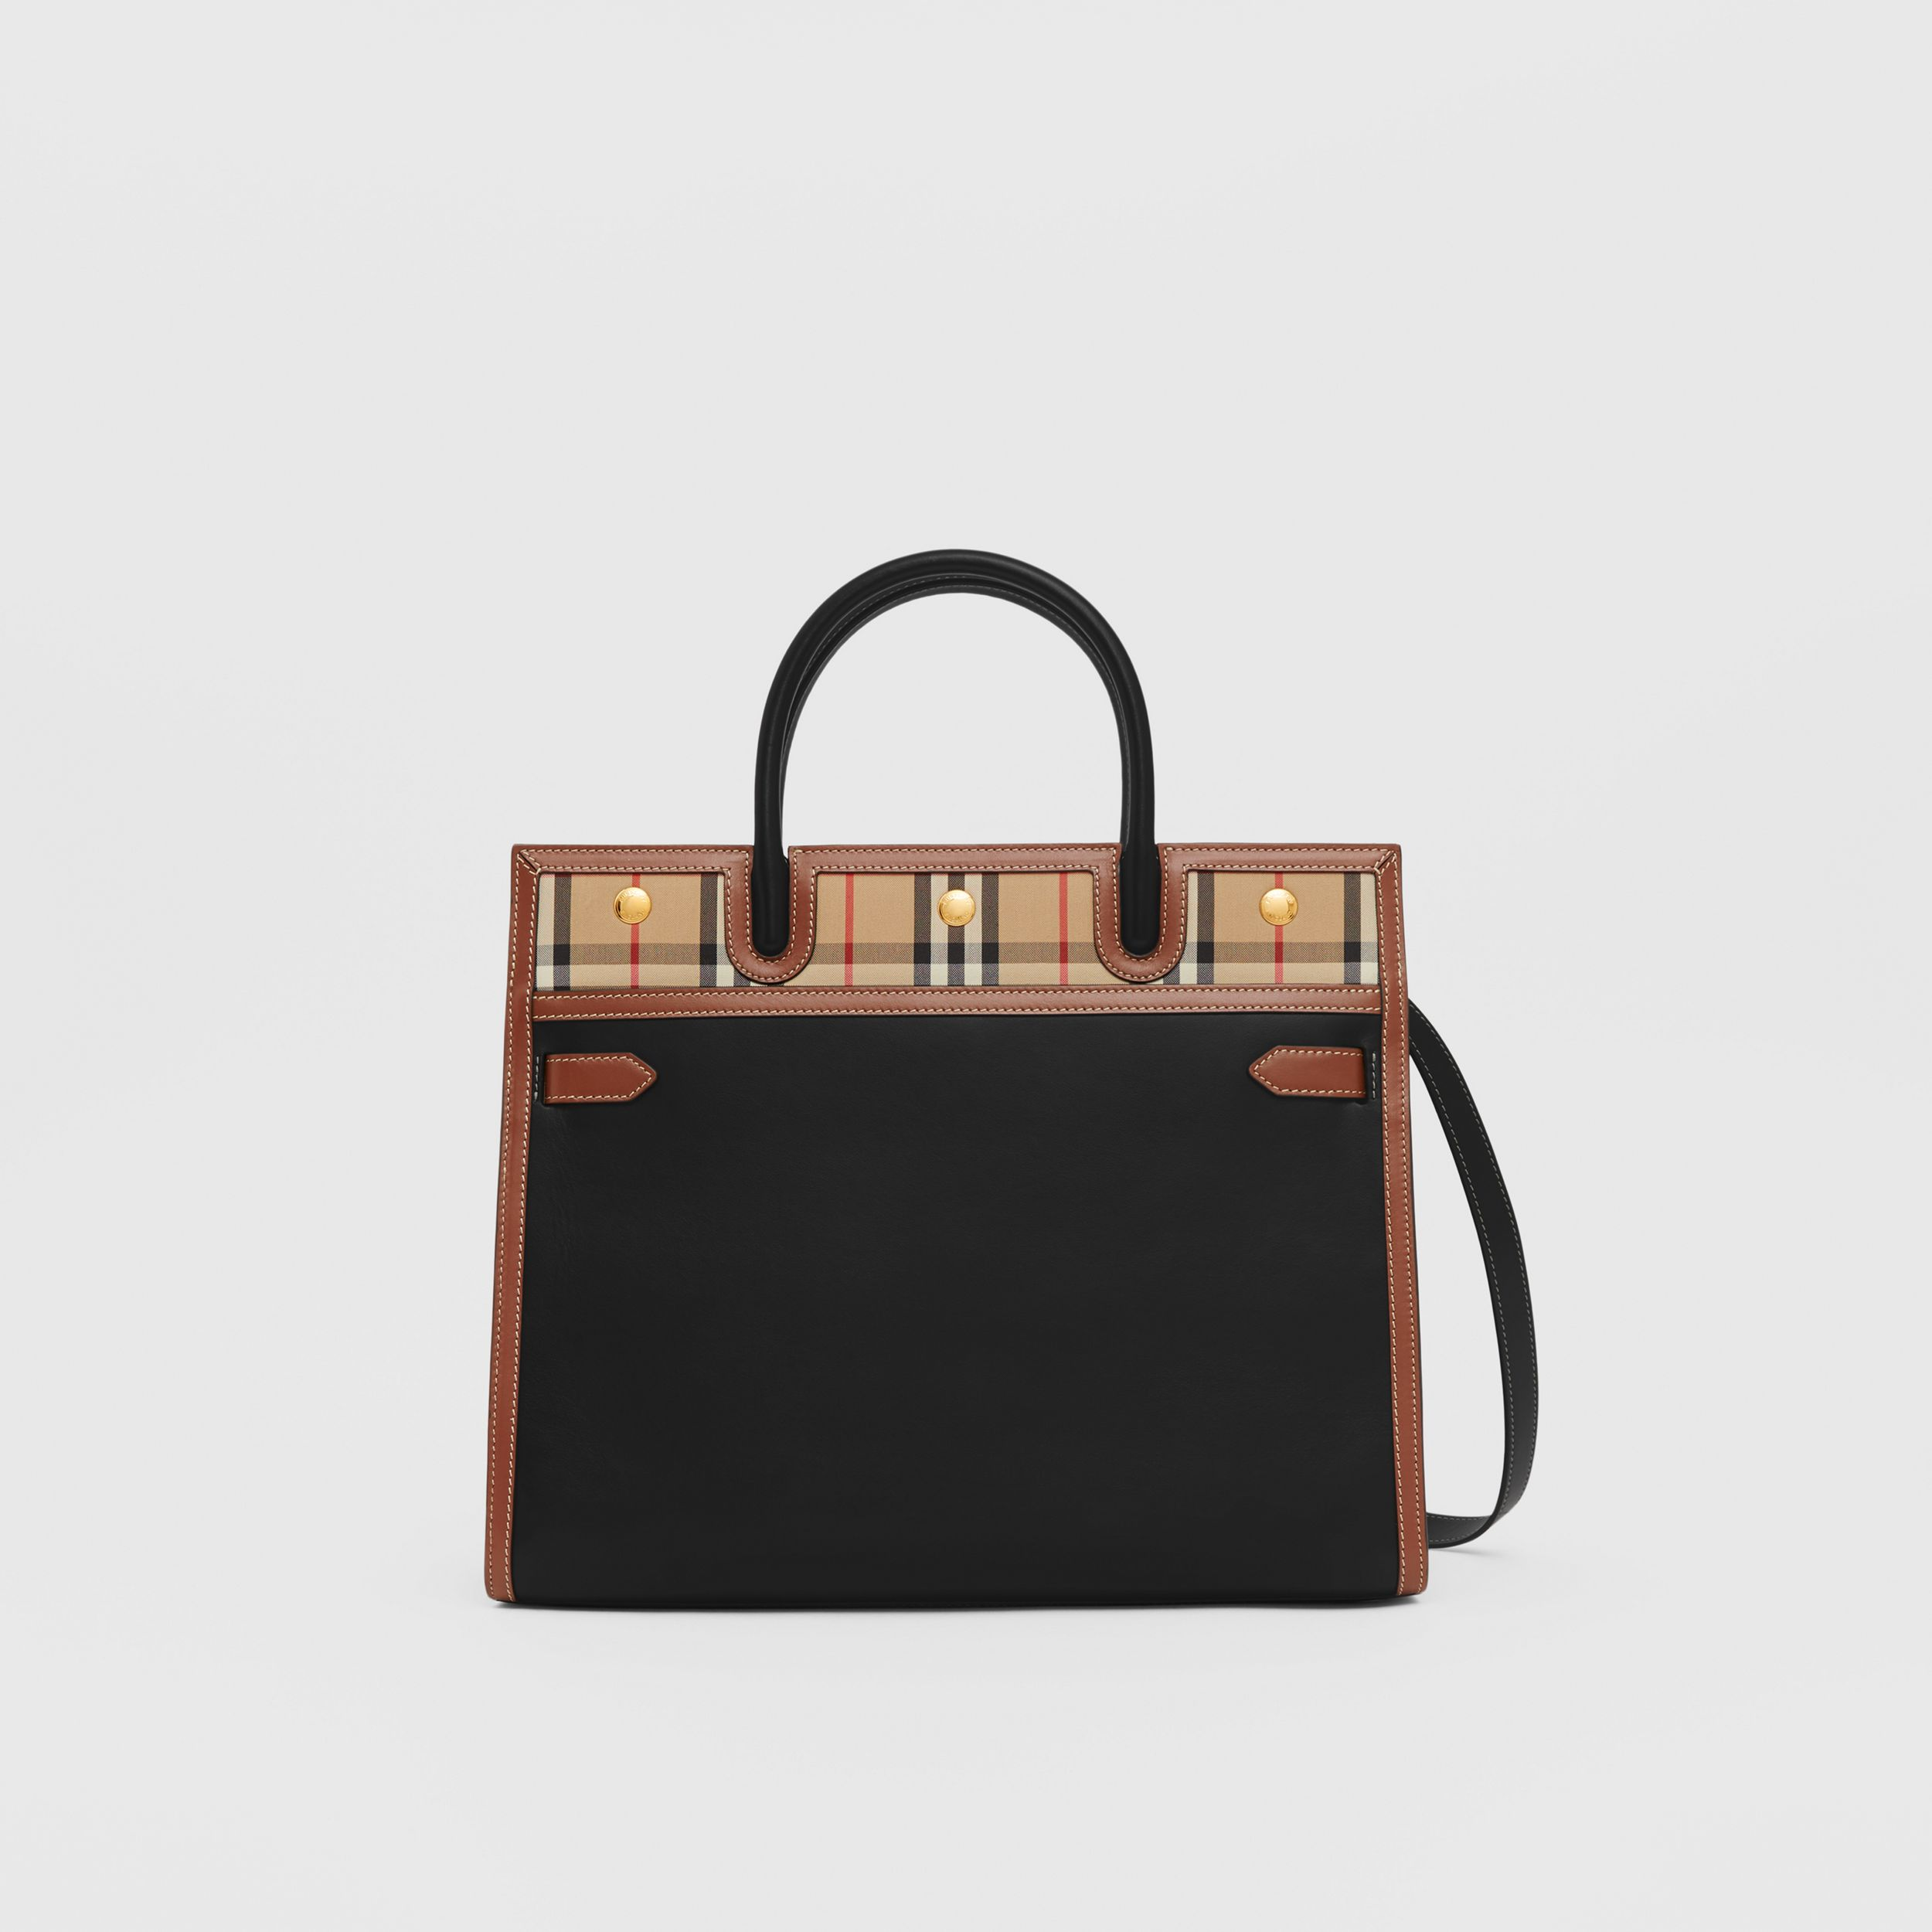 Small Leather and Vintage Check Two-handle Title Bag in Black | Burberry - 1